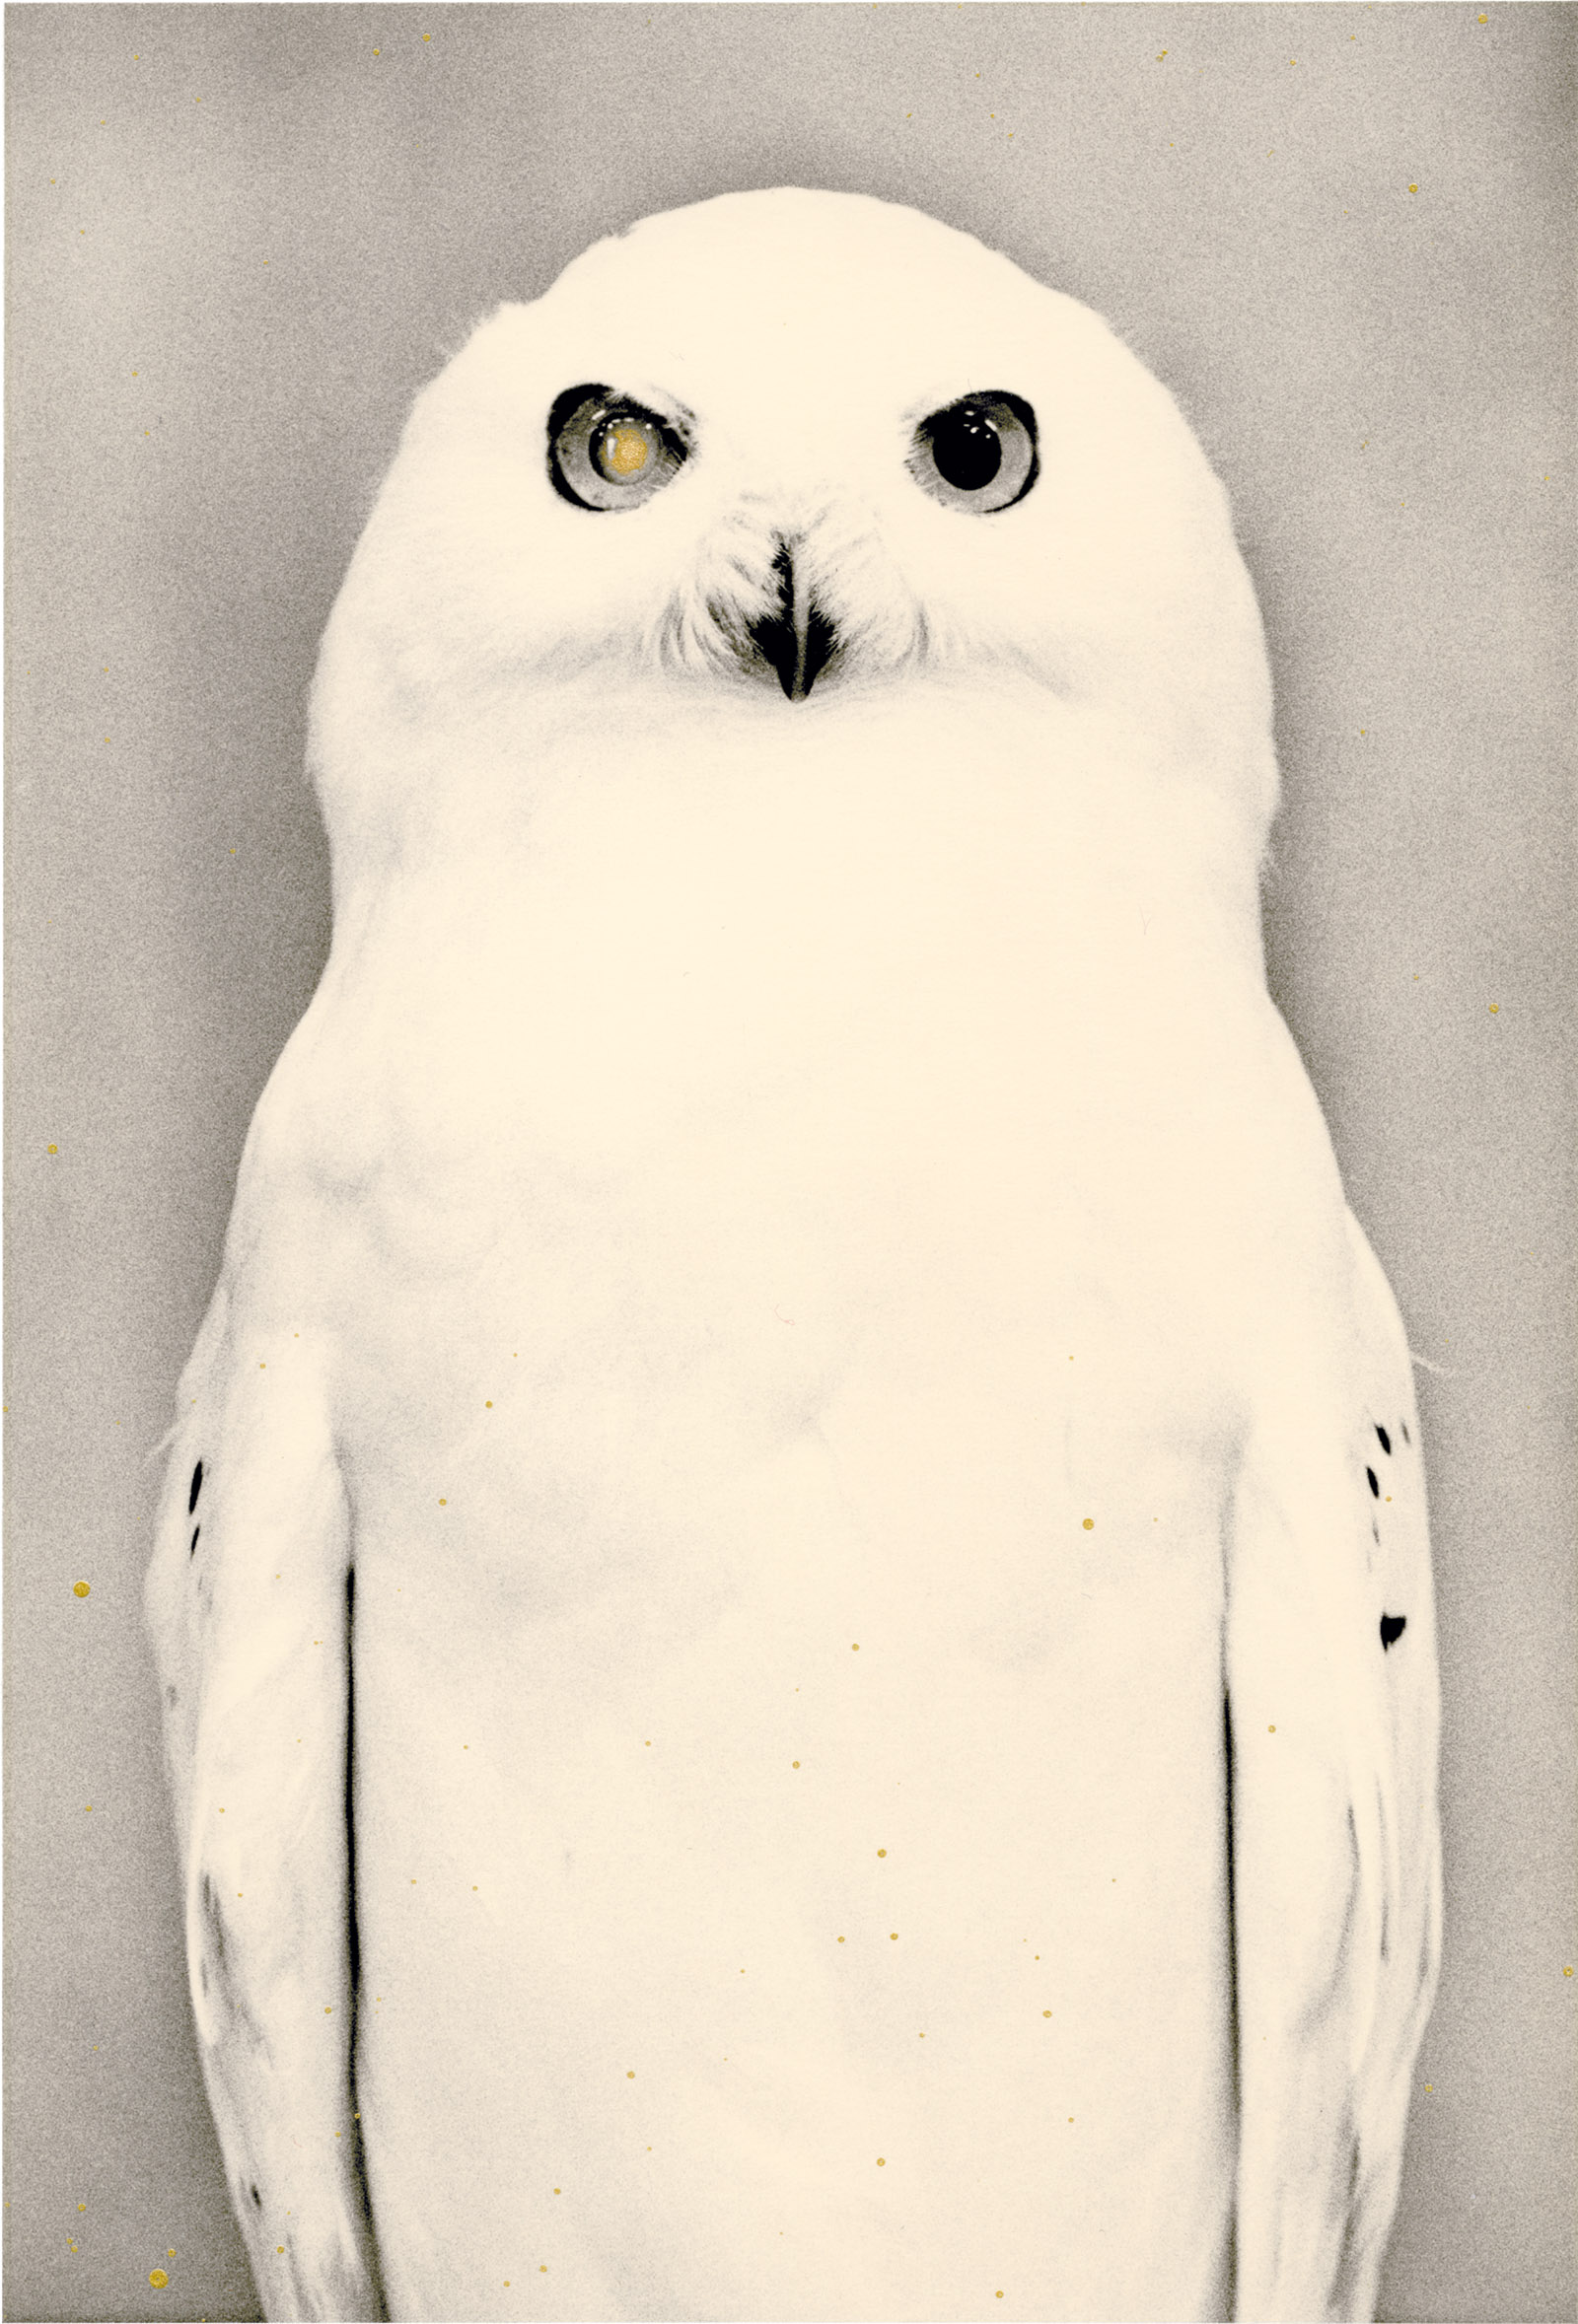 Snowy owl; photograph by Yamamoto Masao from his book Tori, which will be published by Radius in January 2017